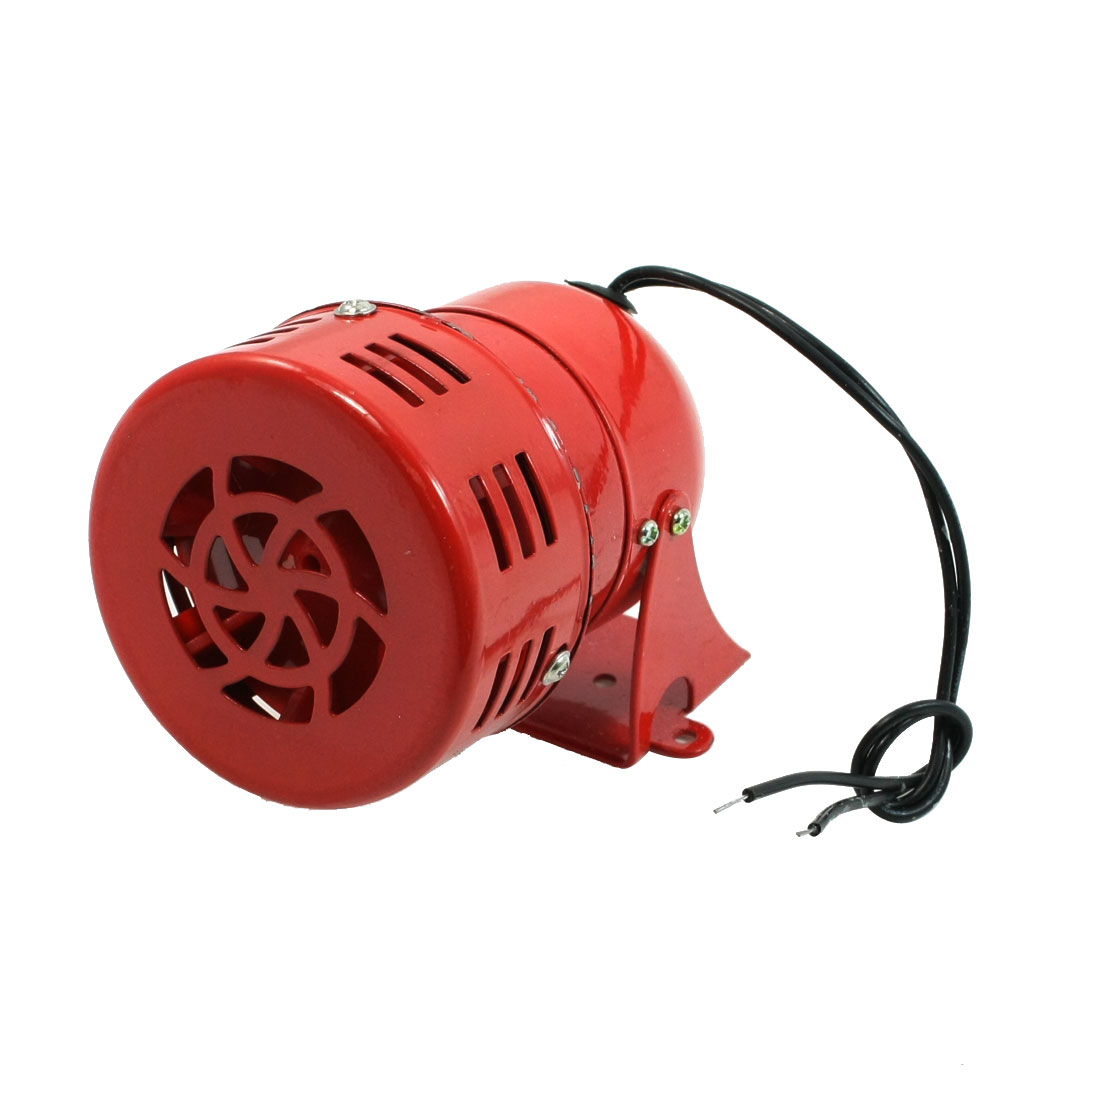 MS-190 AC 220V Red Metal Housing Motor Driven Siren for Security System